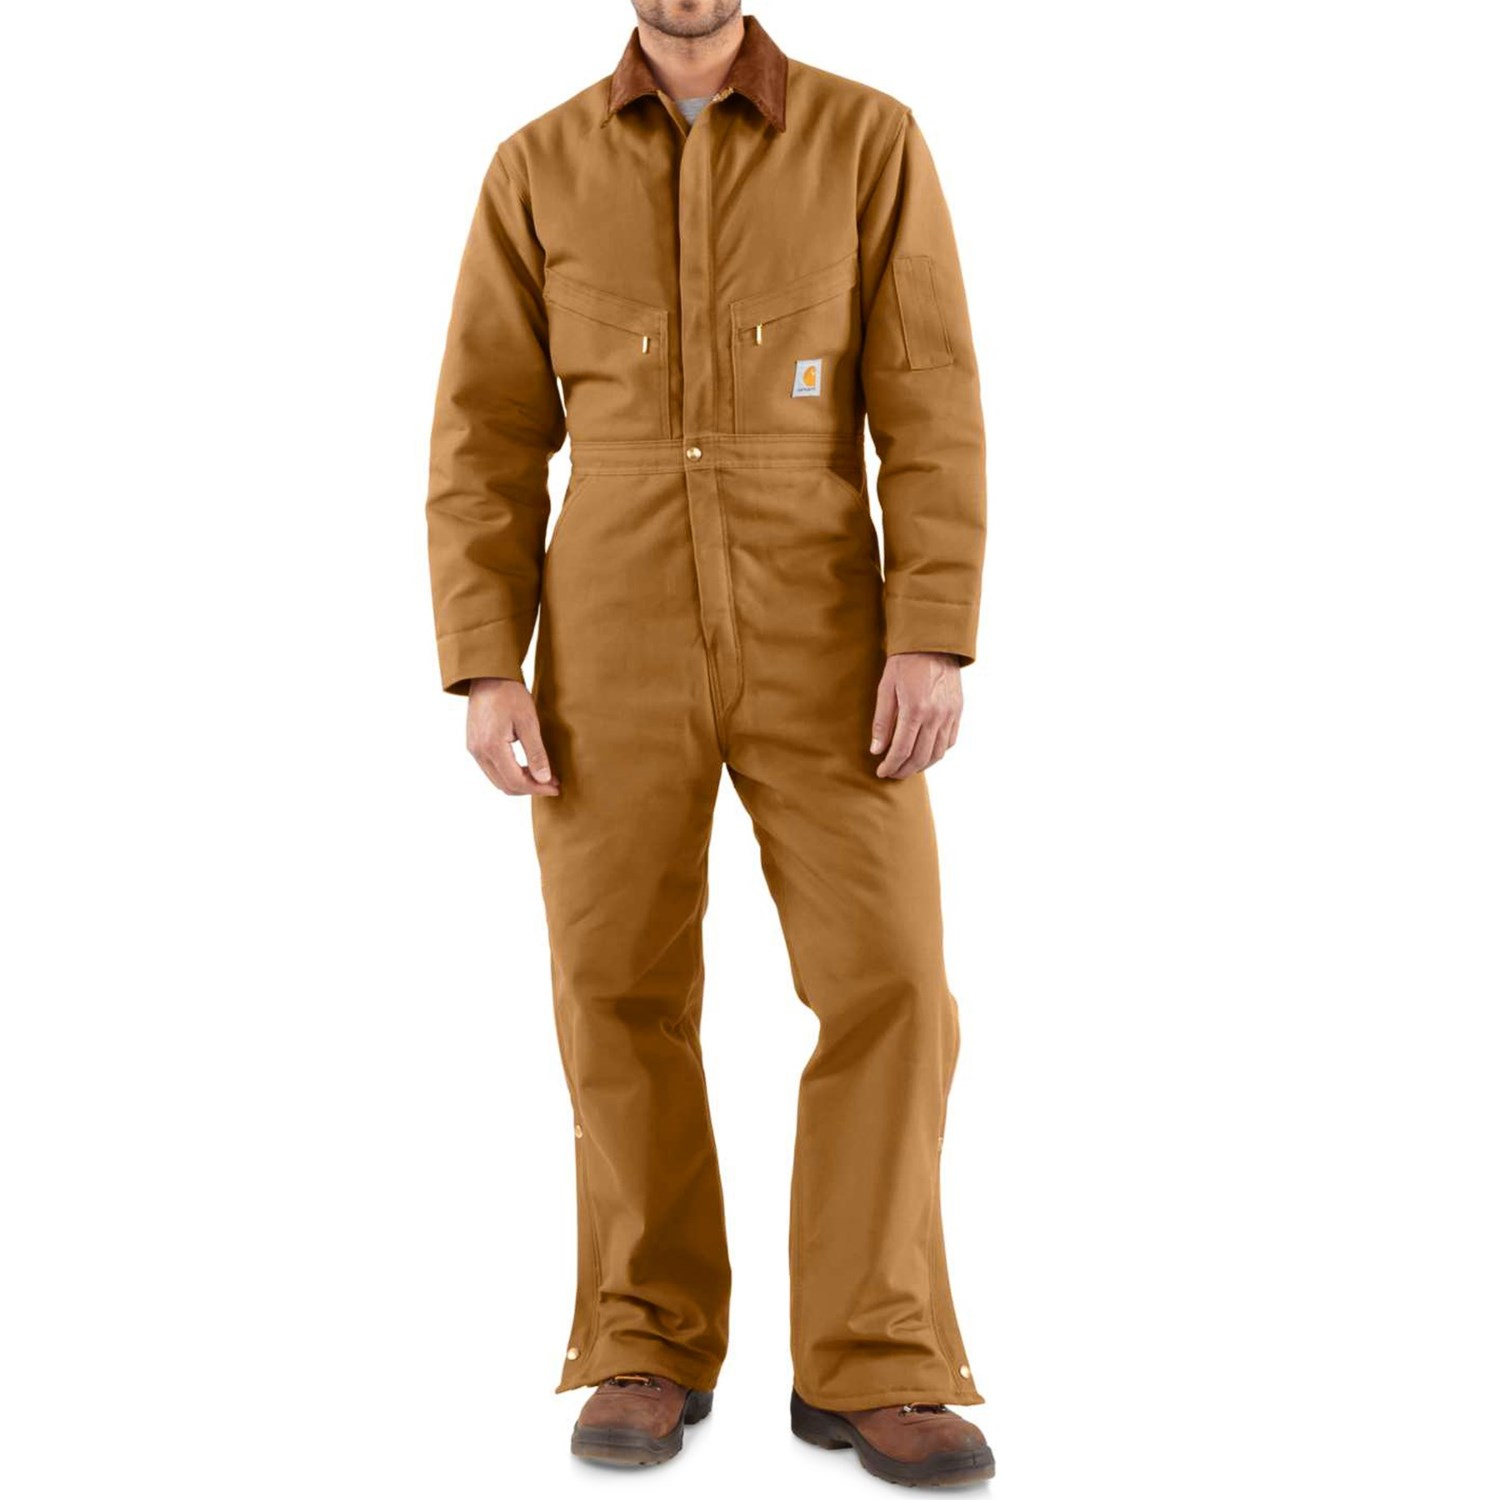 http://i.stpost.com/carhartt-quilt-lined-duck-coveralls-for-men-in-carhartt-brown~p~50325_04~1500.jpg